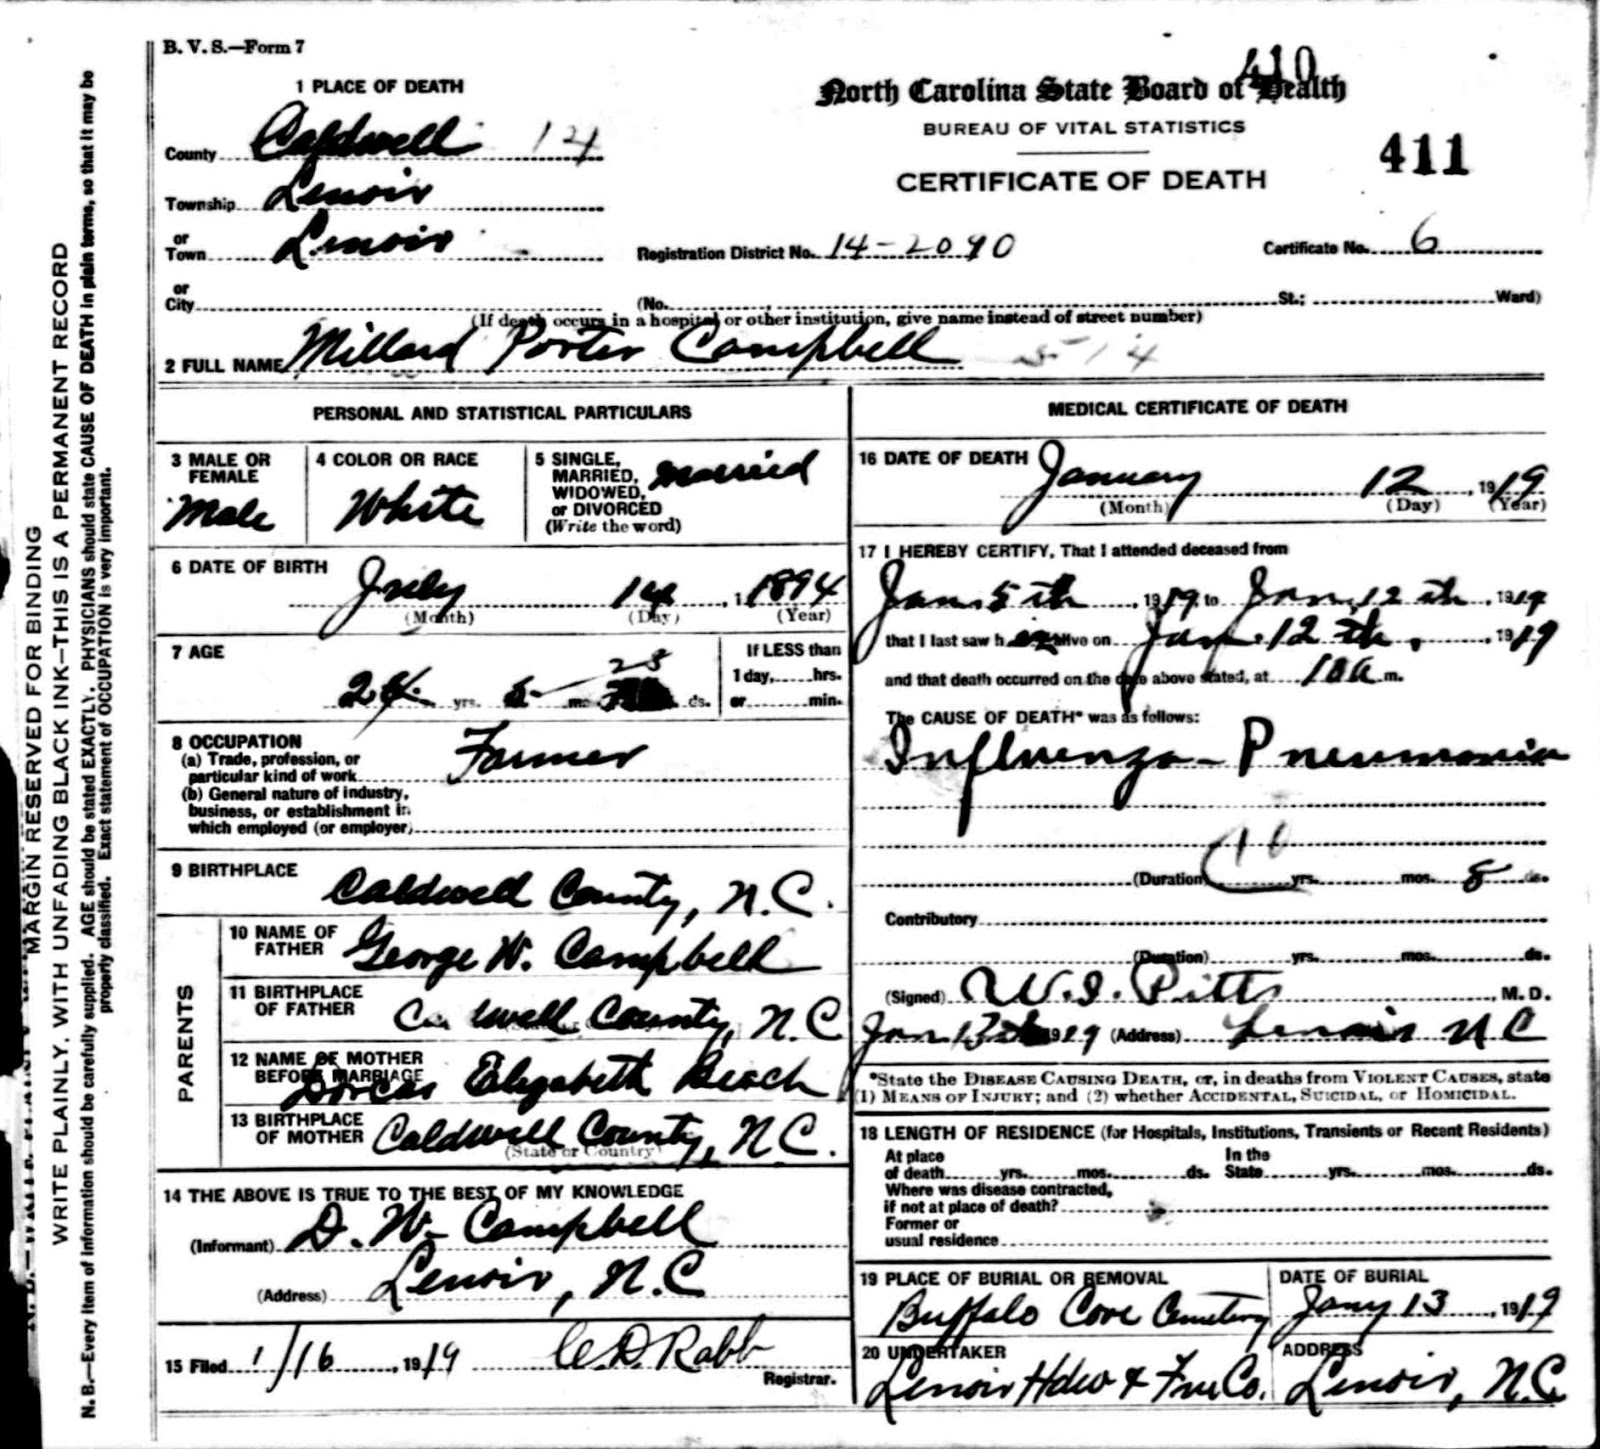 The edward coffey project margaret elizabeth bessie coffey she was born aug 29 1894 in buffalo cove caldwell co and married millard porter campbell on sep 24 1916 in yadkin valley millard was born jul aiddatafo Image collections